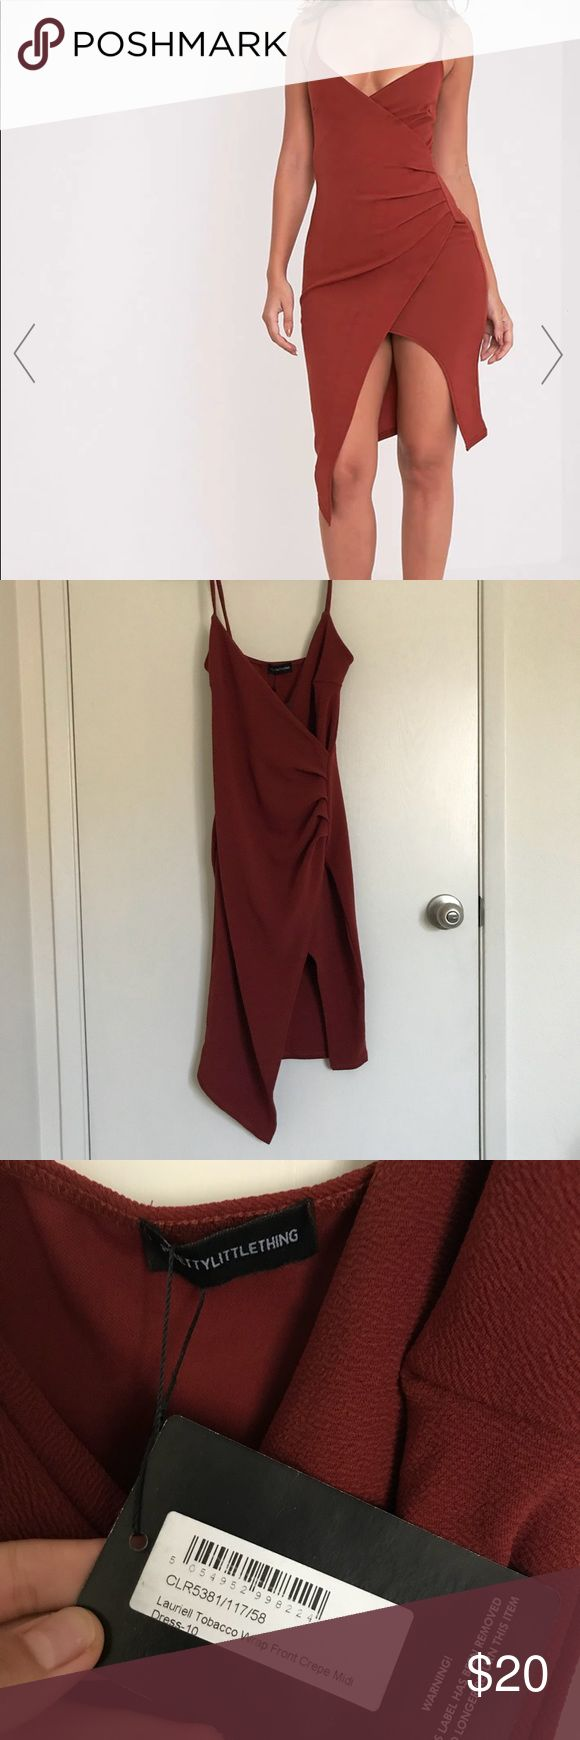 Assymetrical Rust Going Out Dress 🔥🔥🔥 Low cut, asymmetrical, sexy! Fabric is actually pretty thick too! US 6, UK 10. Never worn! pretty little thing Dresses Asymmetrical